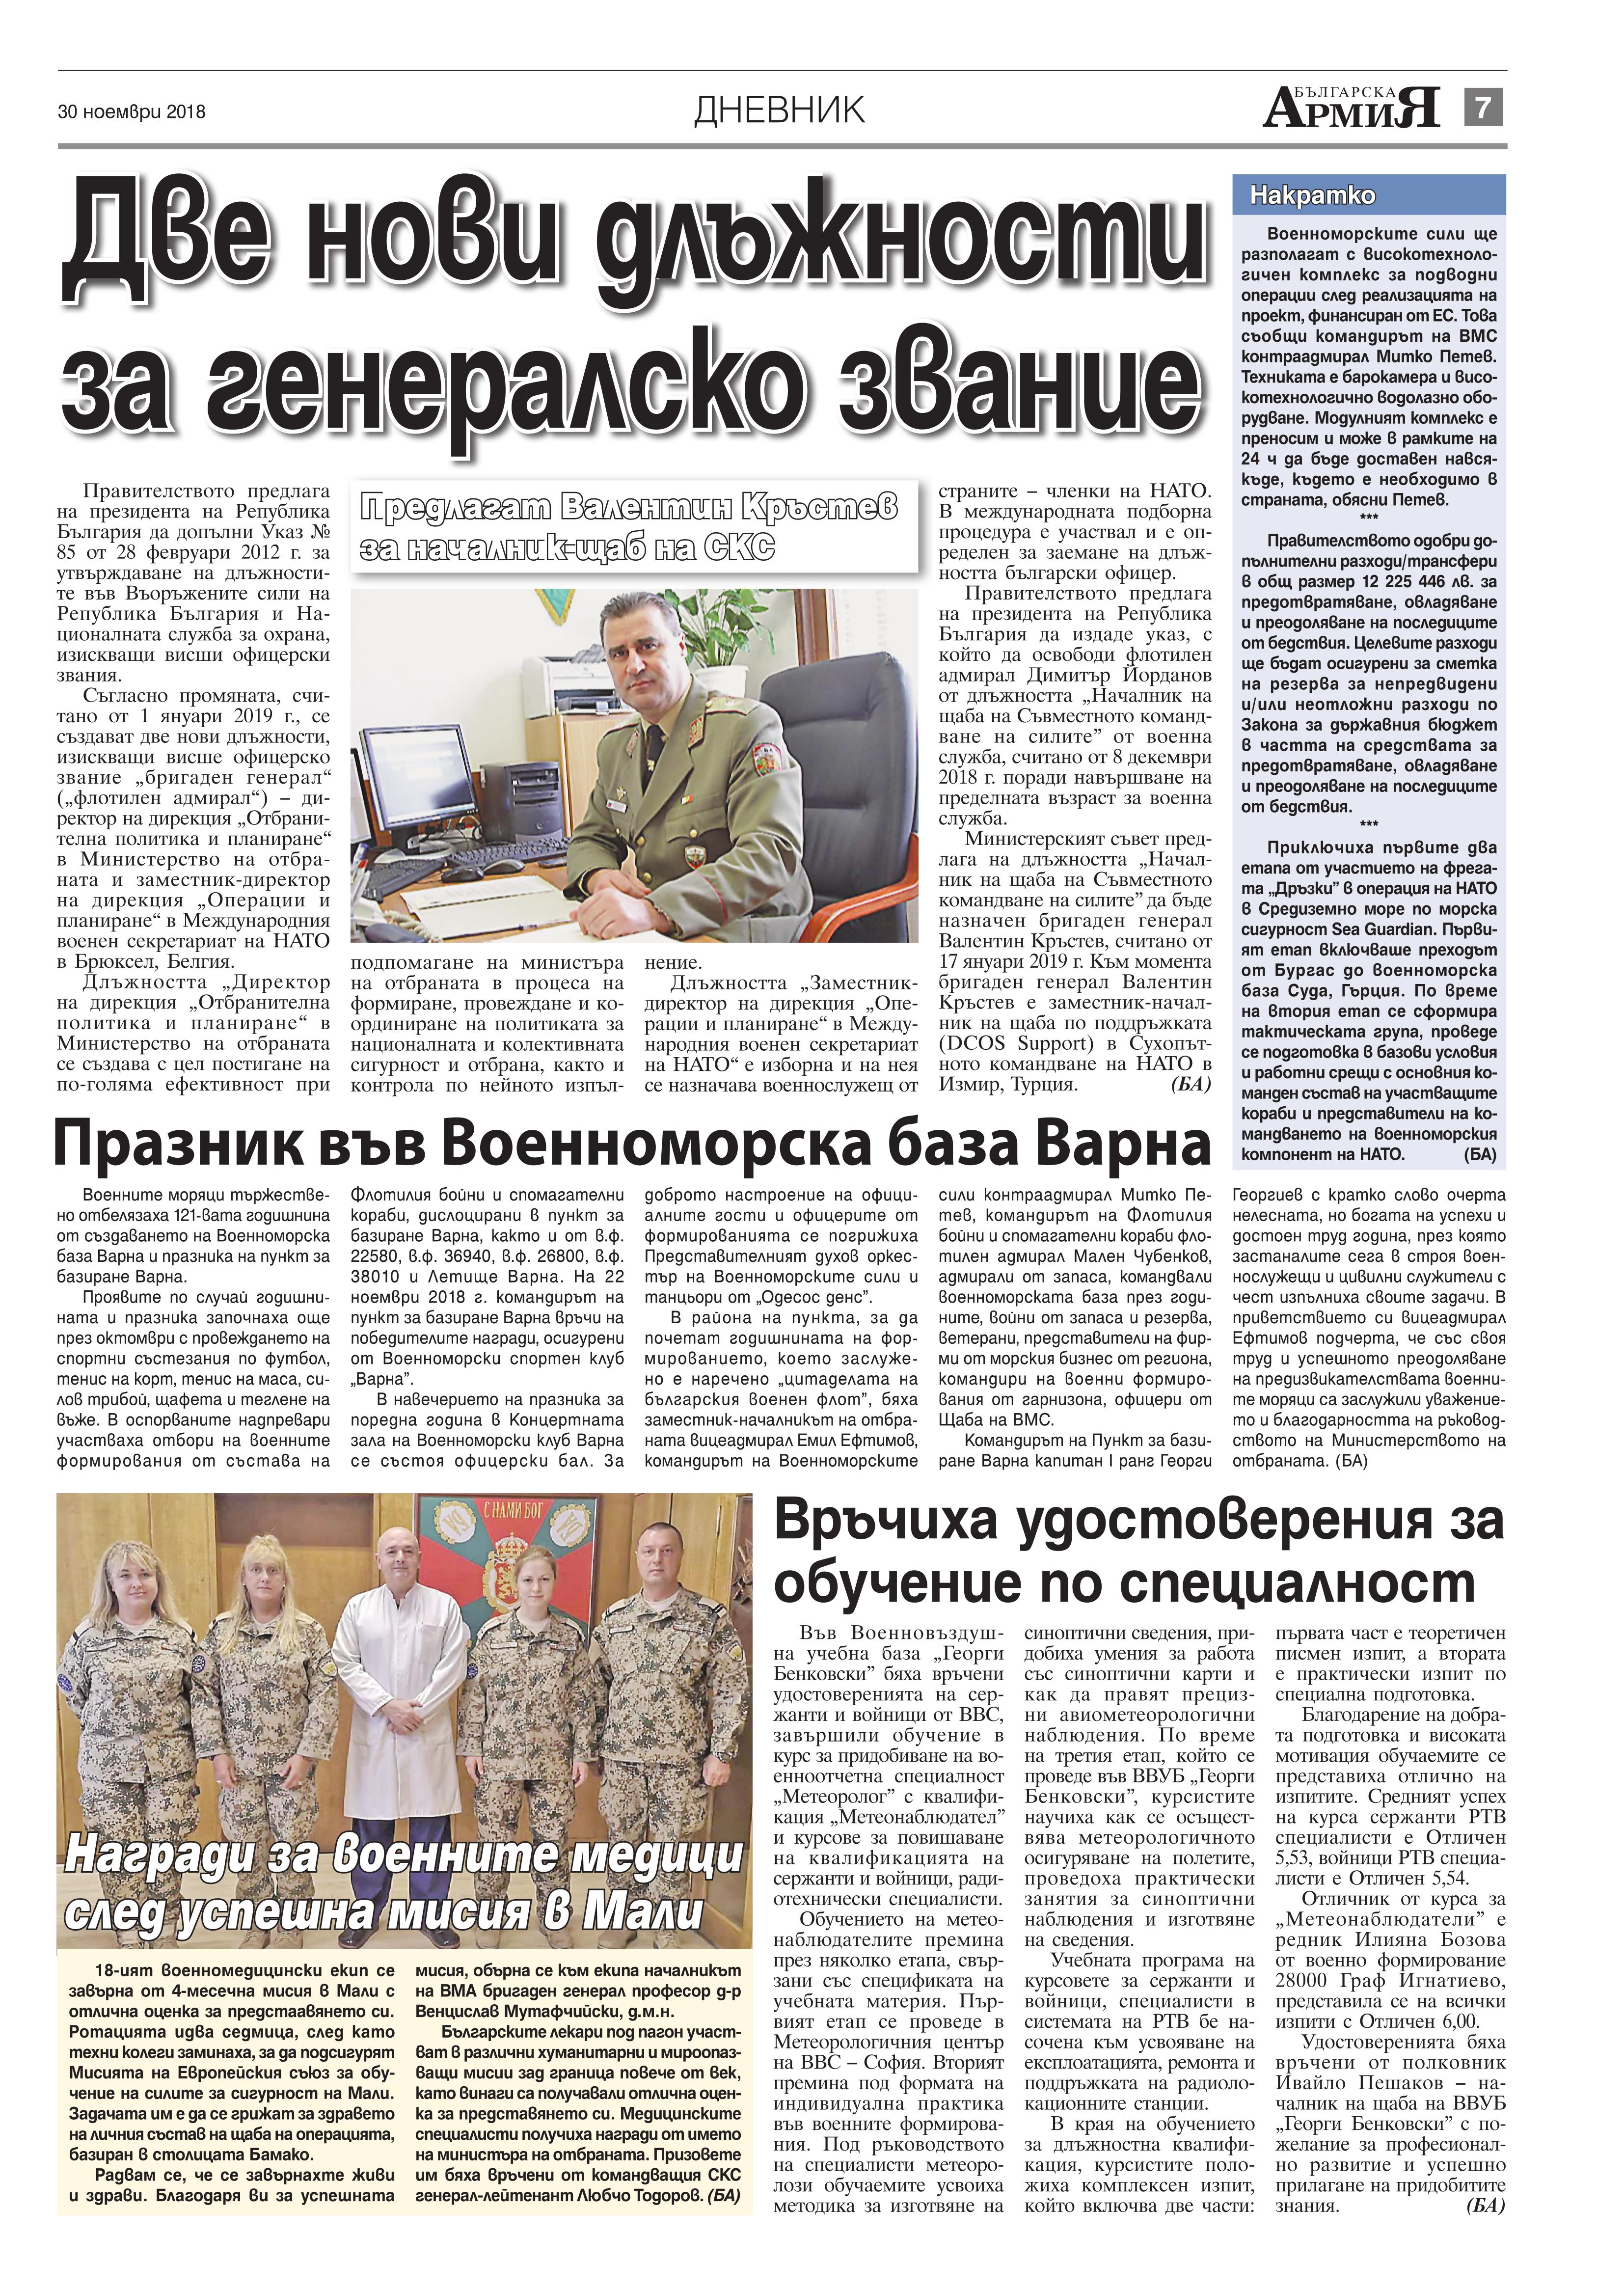 https://armymedia.bg/wp-content/uploads/2015/06/07.page1_-72.jpg